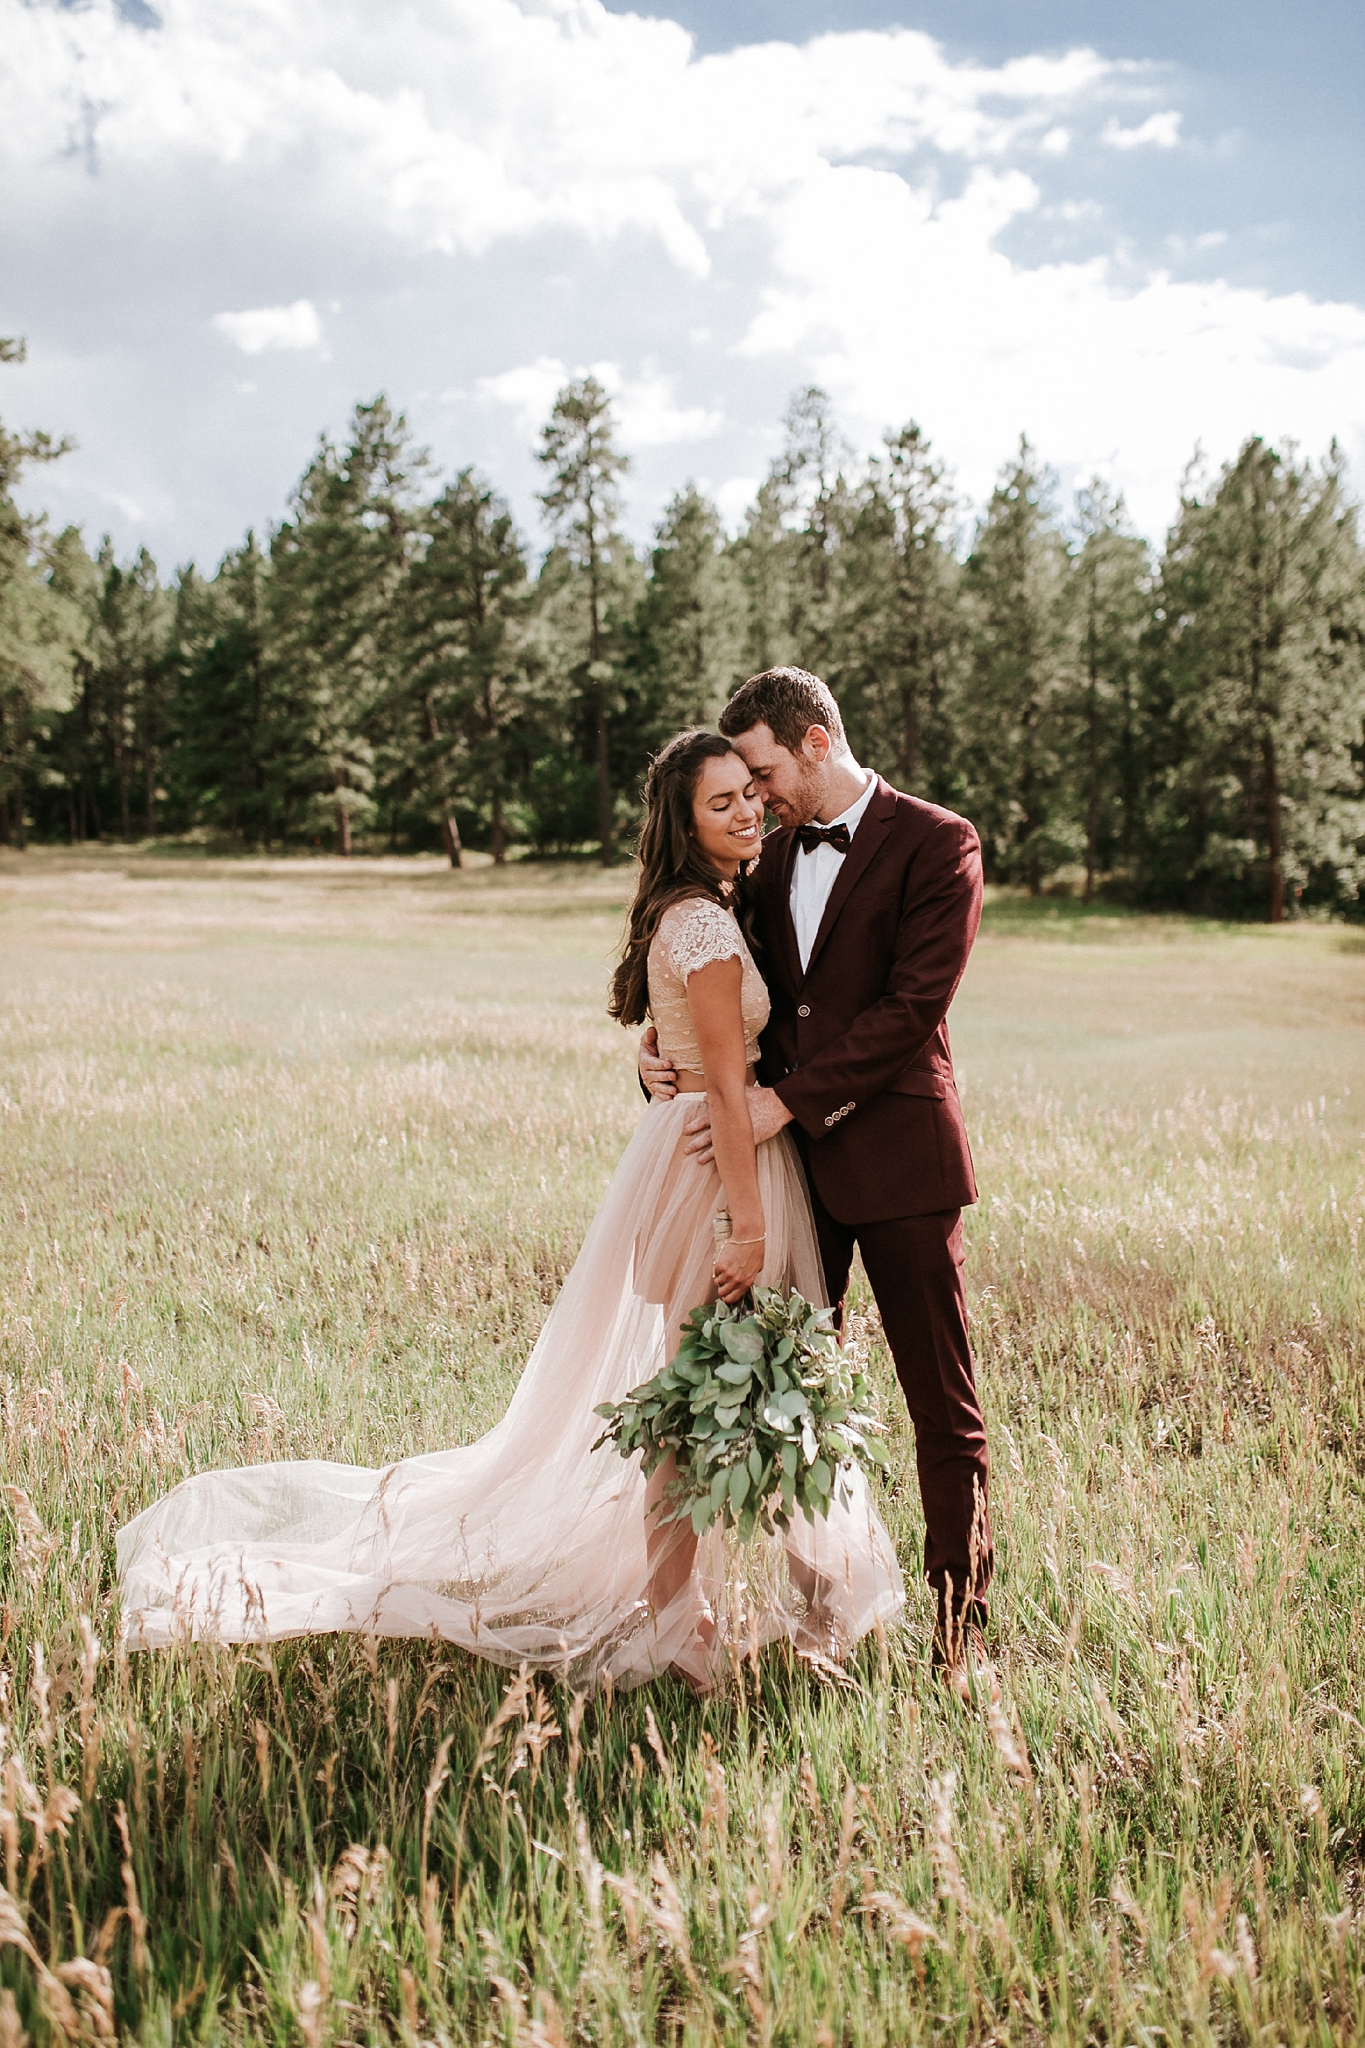 Alicia+lucia+photography+-+albuquerque+wedding+photographer+-+santa+fe+wedding+photography+-+new+mexico+wedding+photographer+-+albuquerque+wedding+-+santa+fe+wedding+-+wedding+gowns+-+non+traditional+wedding+gowns_0004.jpg